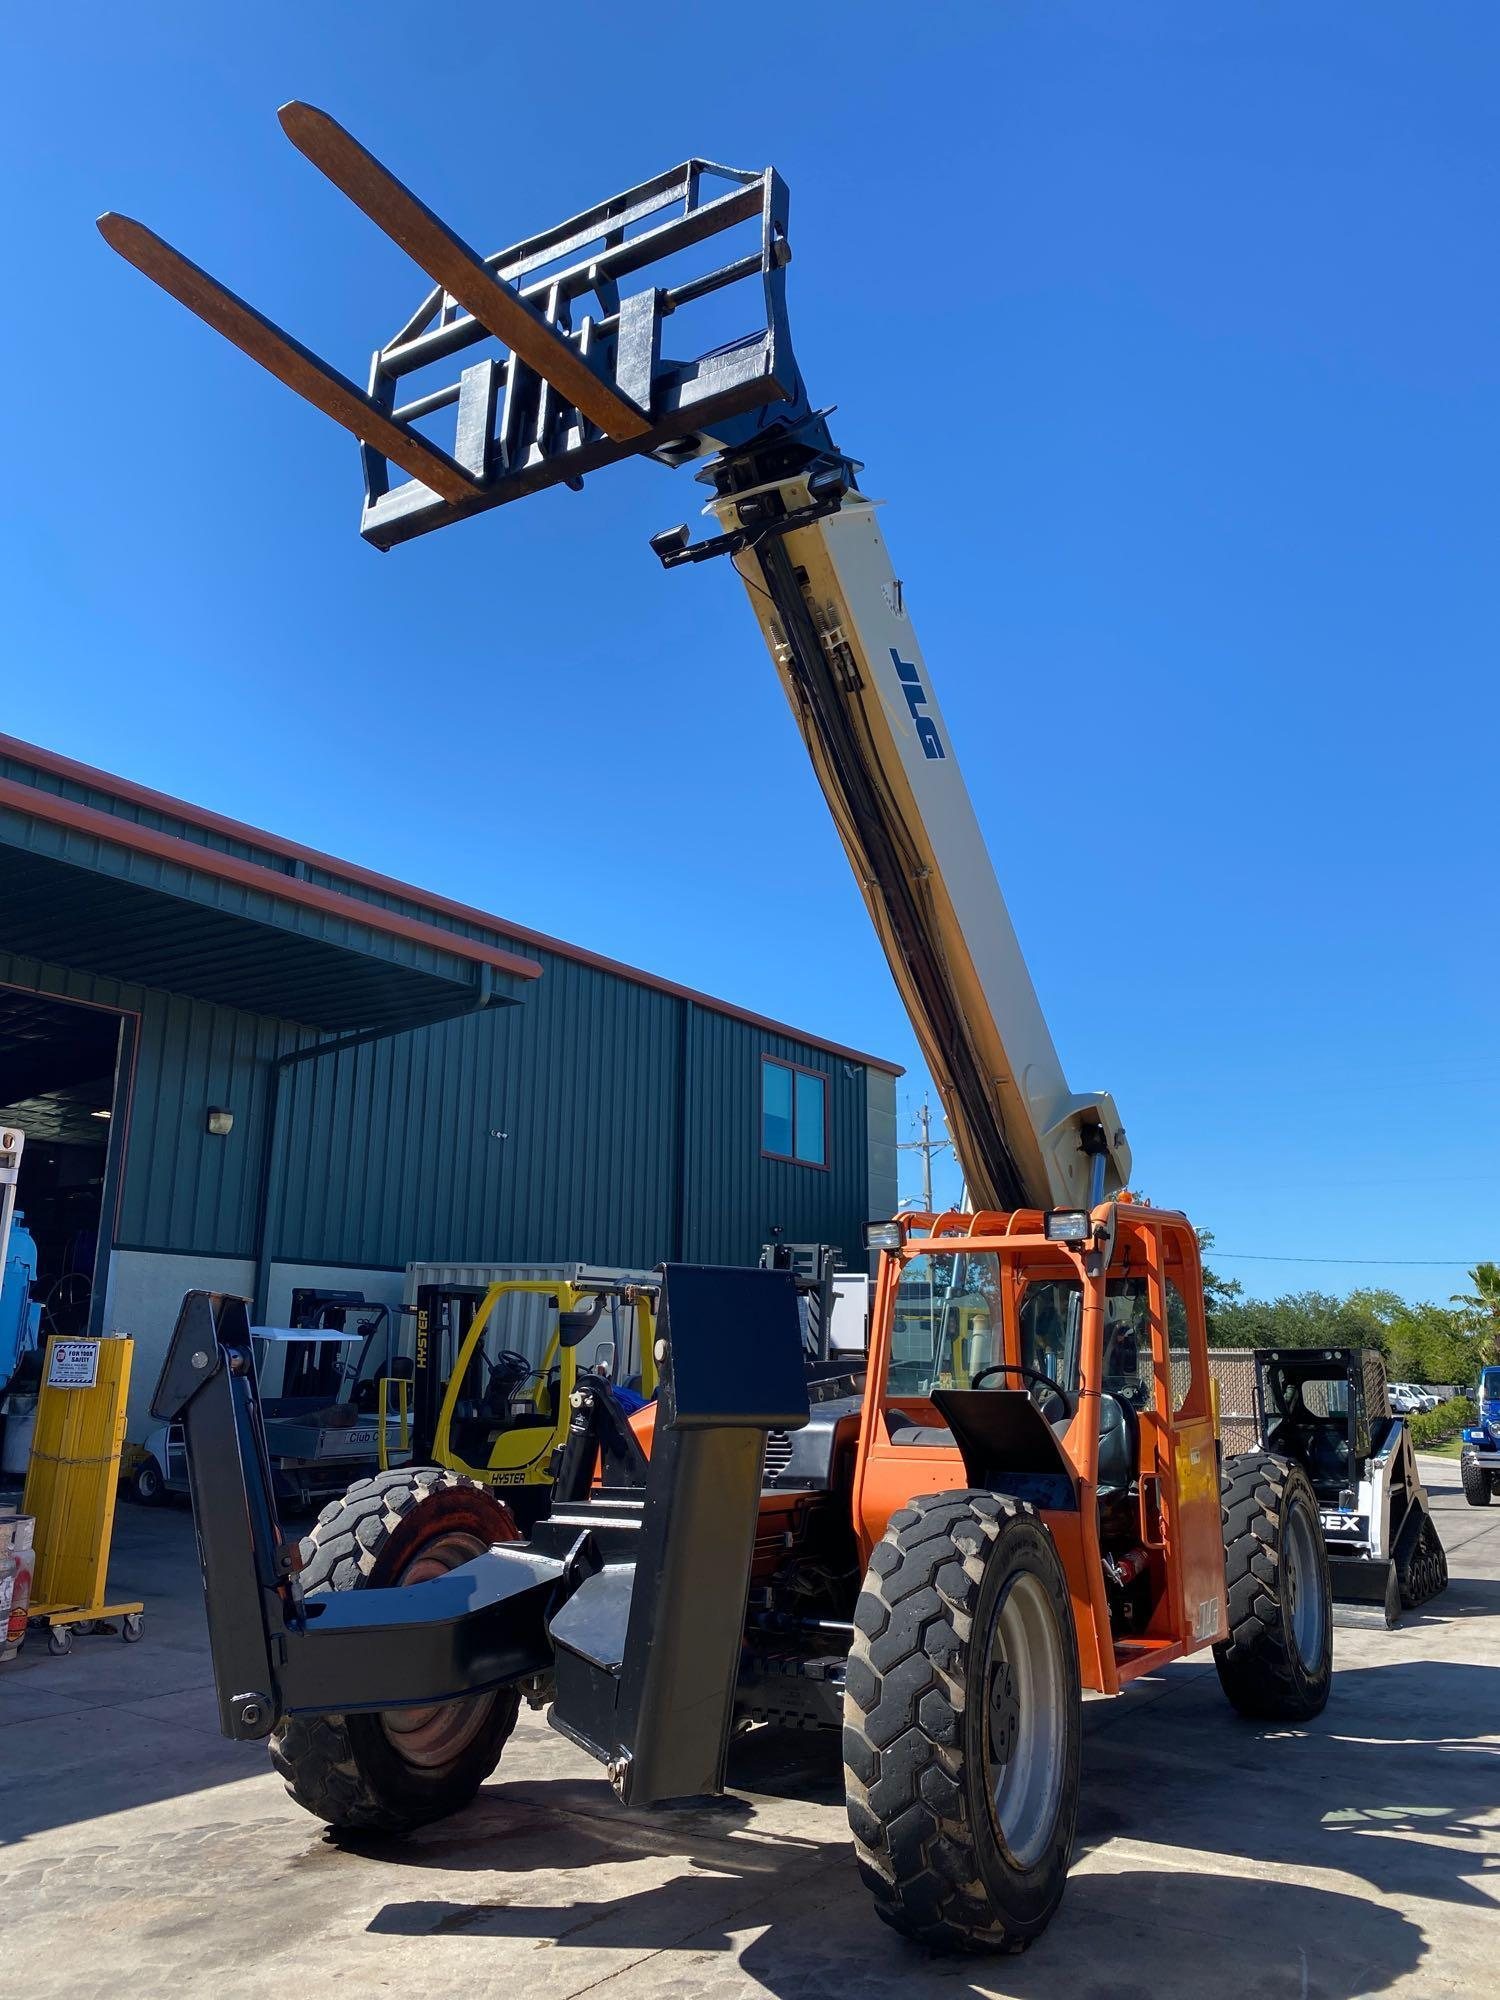 2013 JLG TELESCOPIC FORKLIFT MODEL G10-55A, 10,000 LB CAPACITY, OUTRIGGERS, 5,717.7 HOURS SHOWING, C - Image 3 of 16